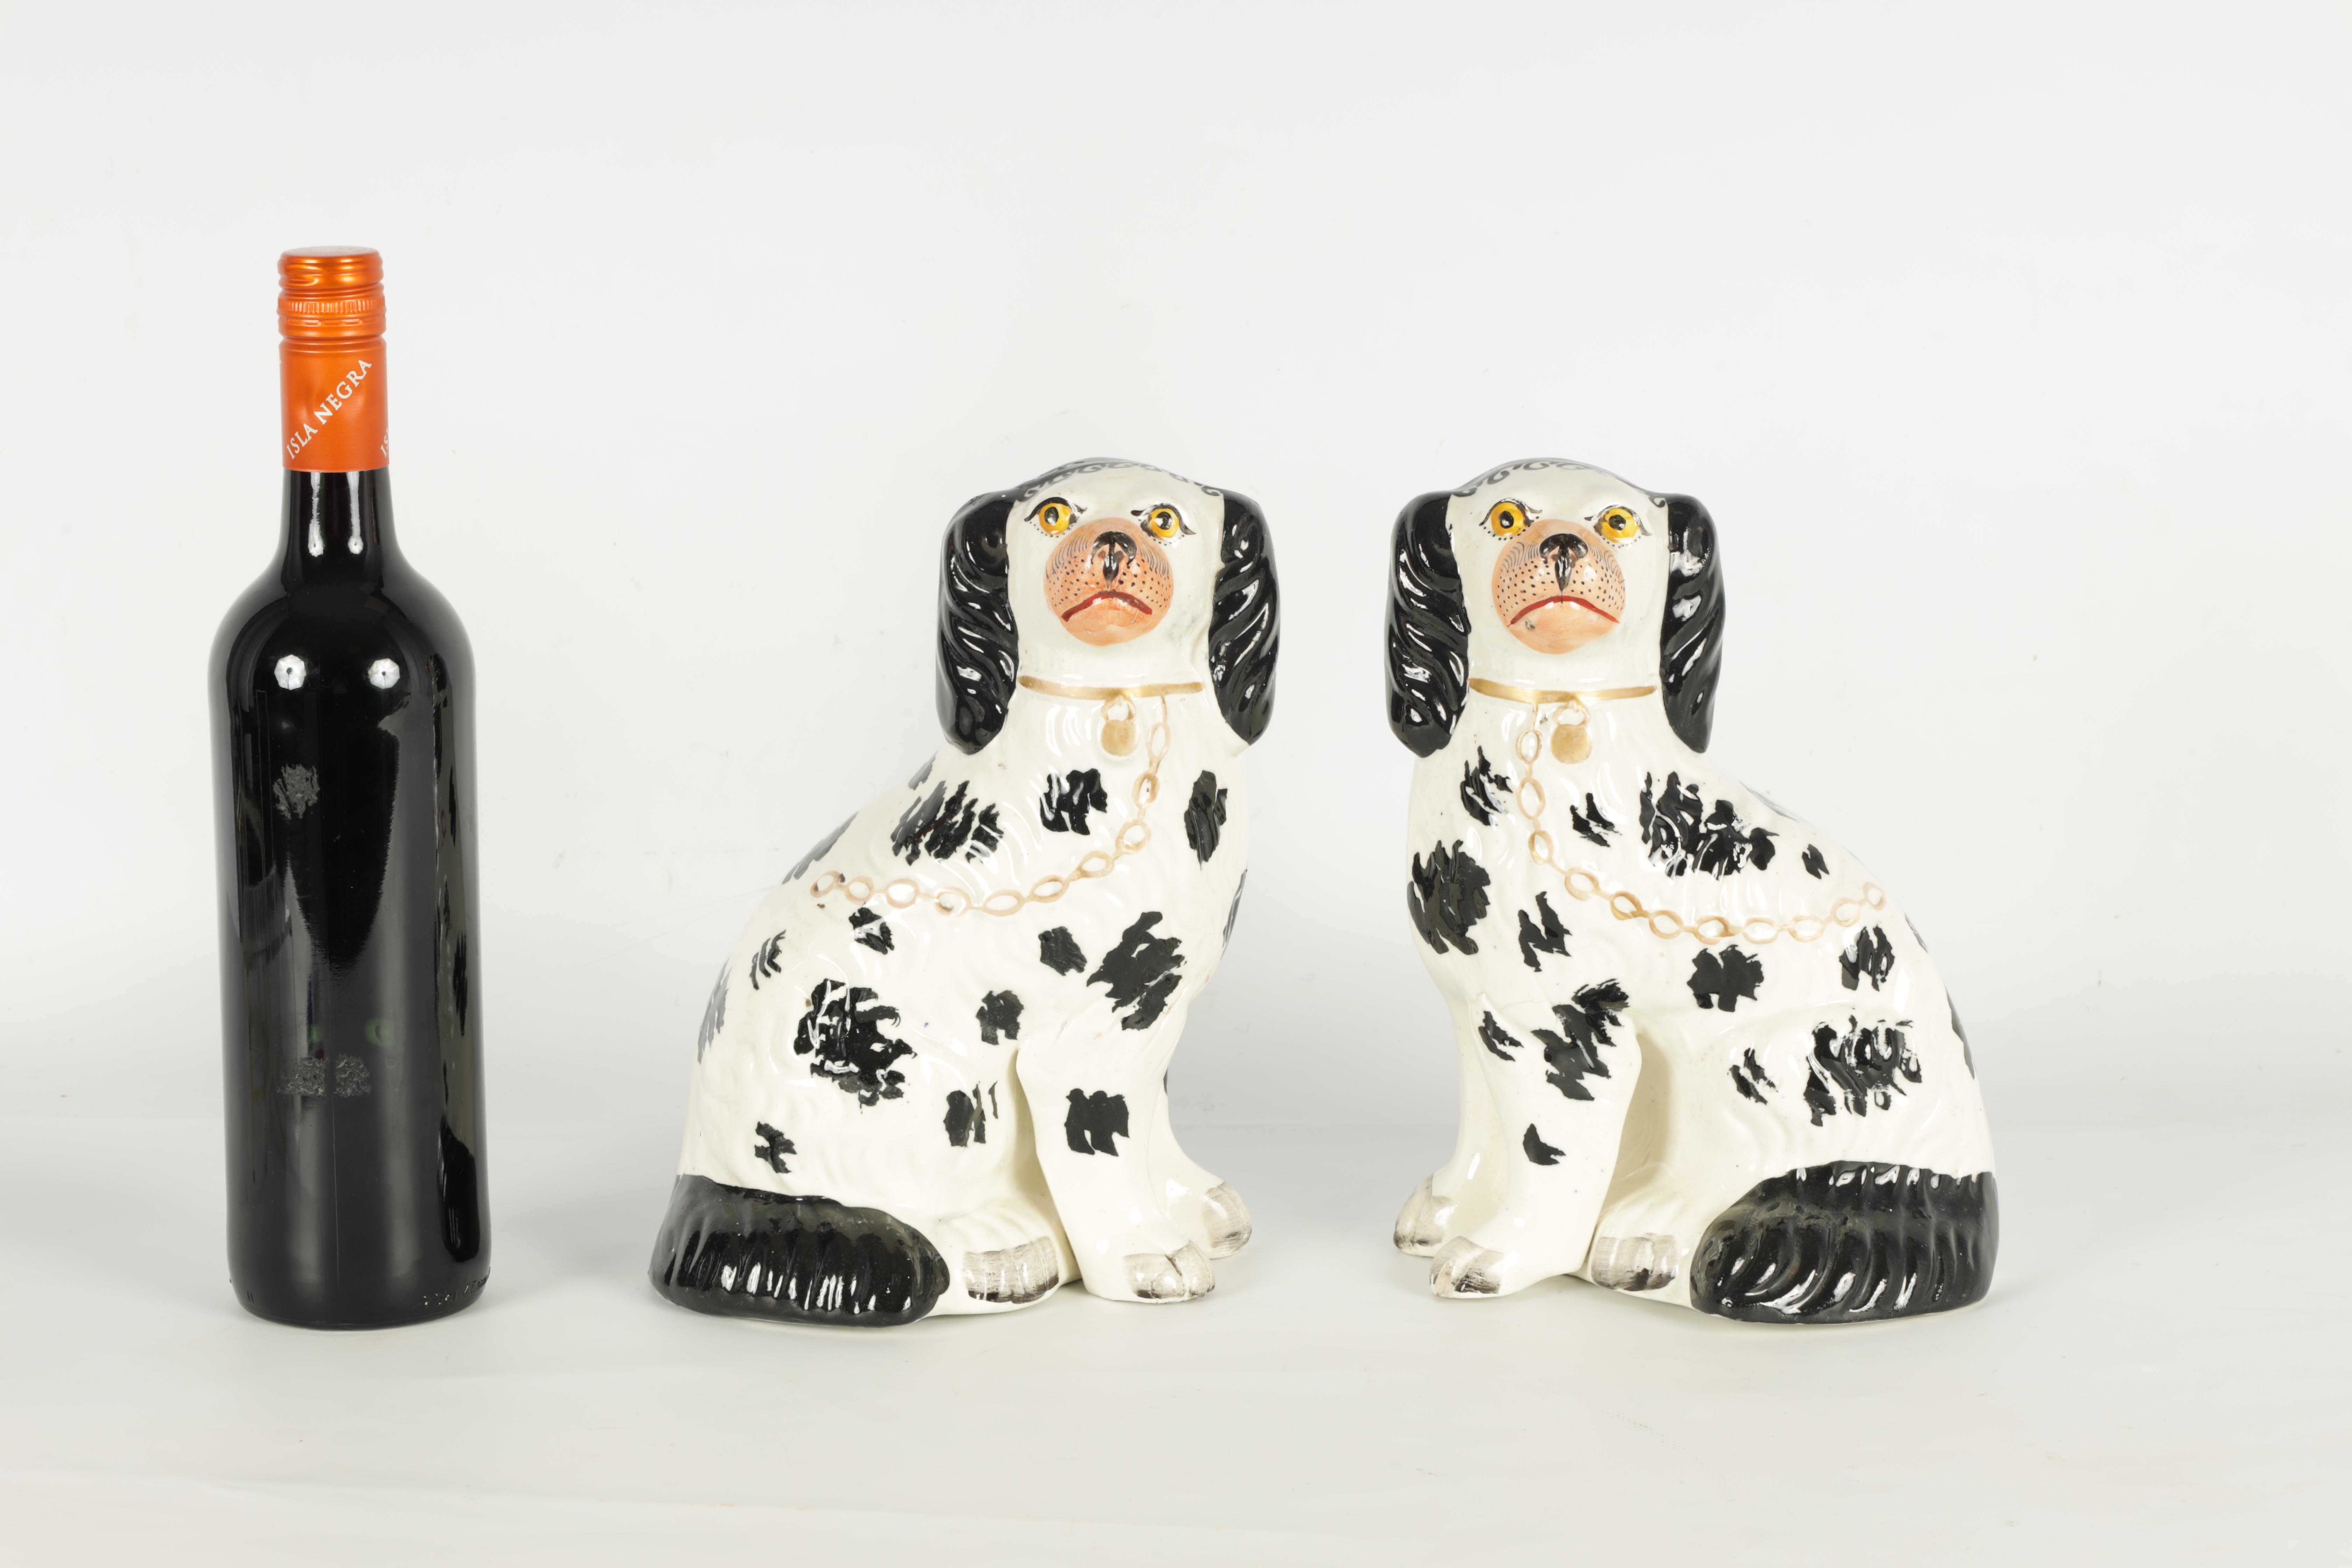 A PAIR OF 19TH CENTURY STAFFORDSHIRE 'DISRAELI CURL' SPANIELS 23cm high - Image 2 of 11